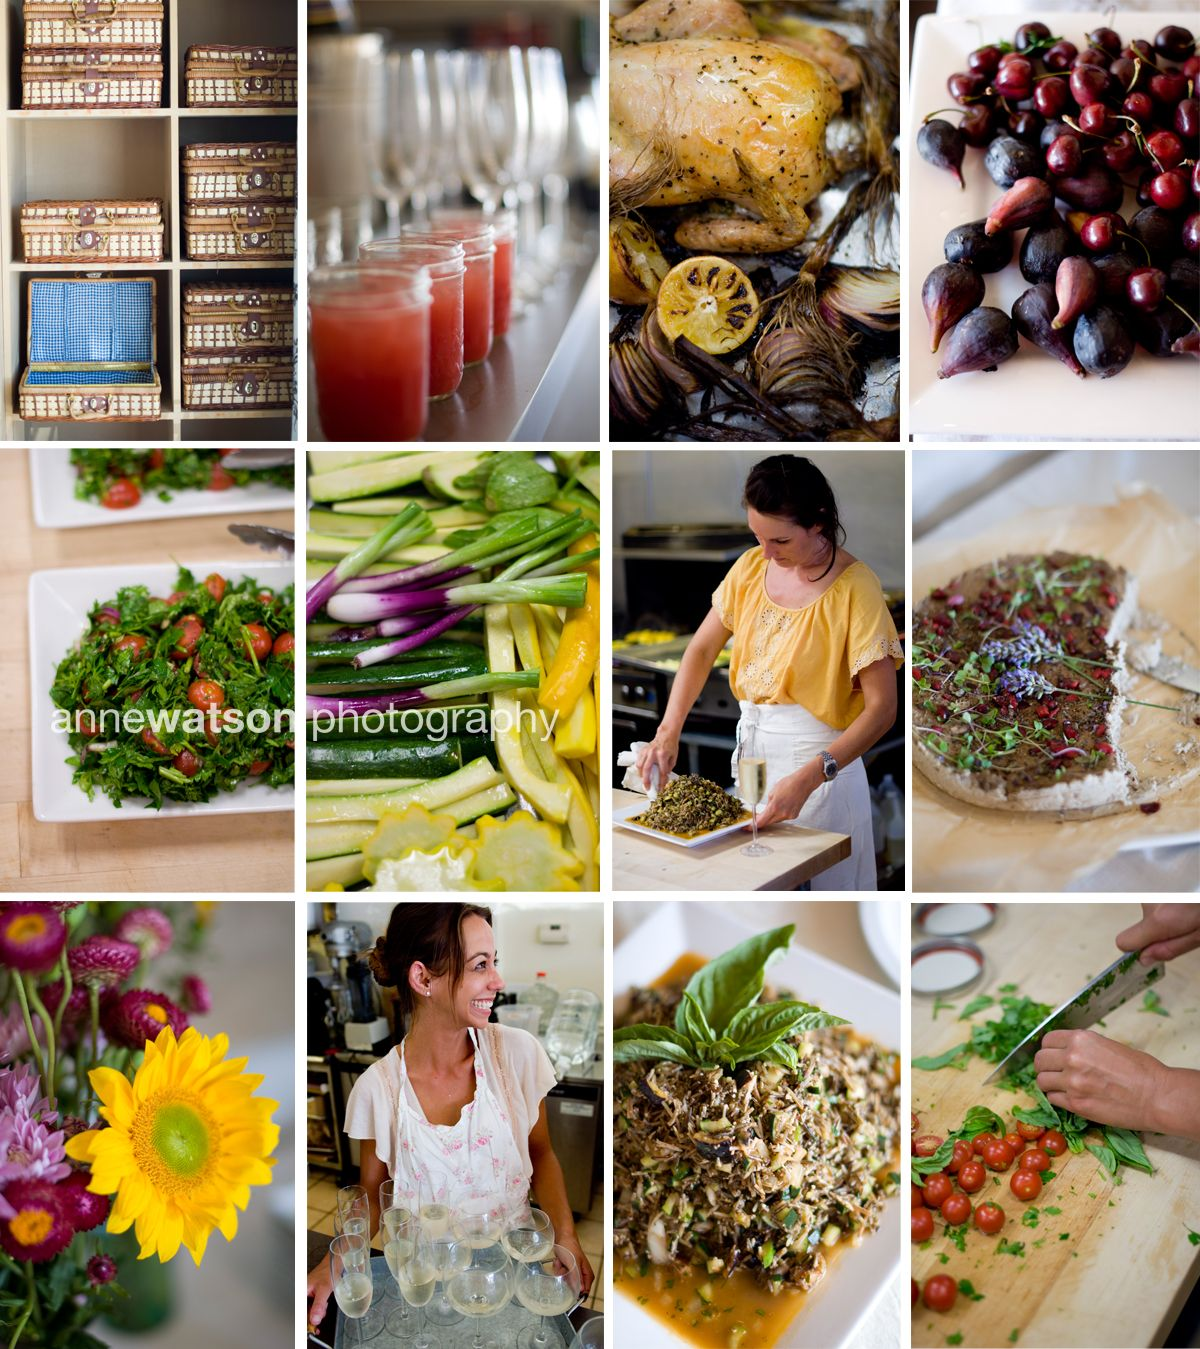 Farm-to-Table freshness abounds at the Picnics Kitchen inaugural Farmers' Market Feast!